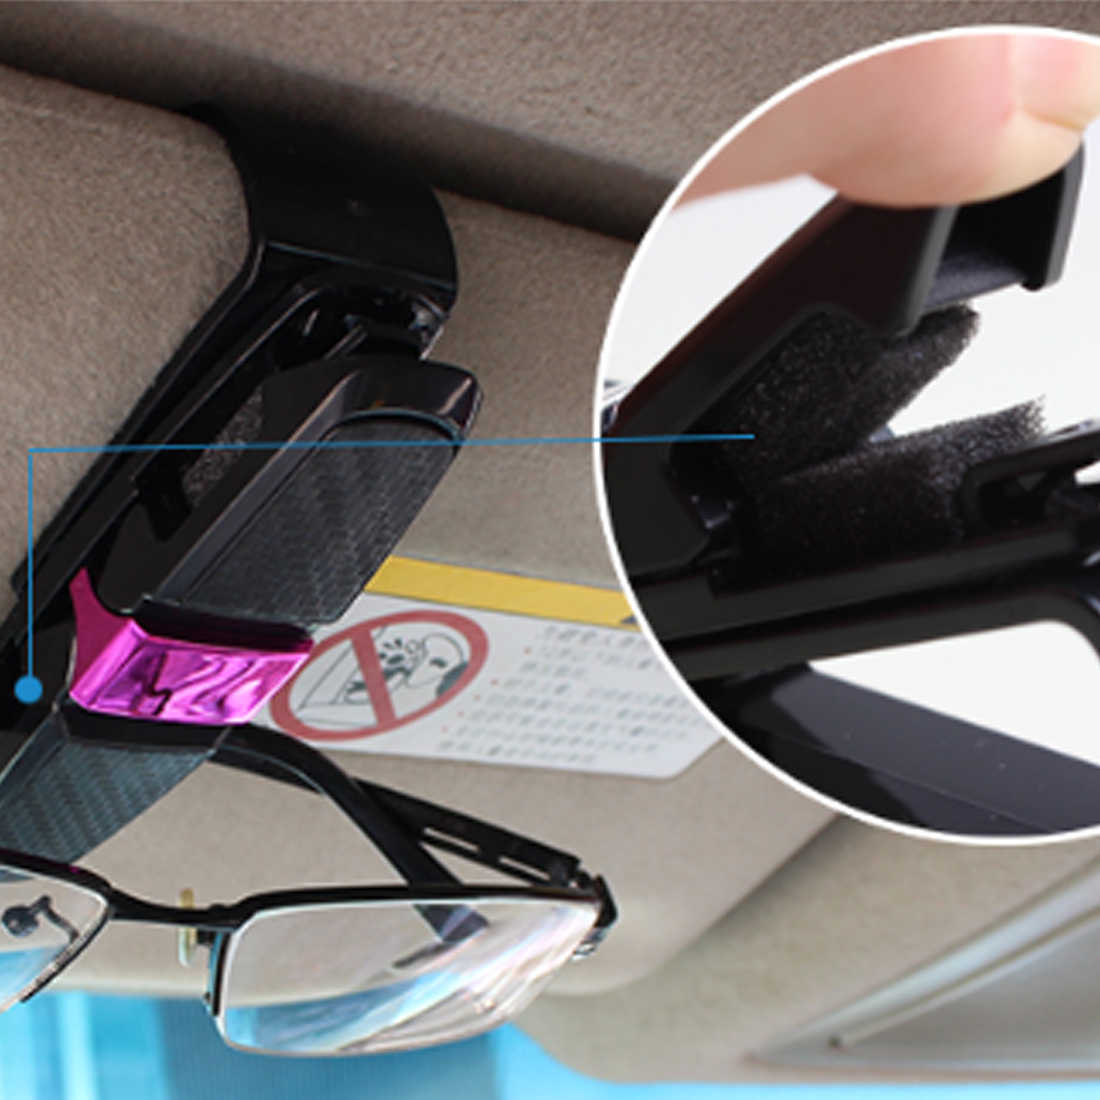 c910f72b78e ... Dewtreetali Universal Car Auto Sun Visor Clip Holder For Reading  Glasses Sunglasses Eyeglass Card Pen Sunglass ...